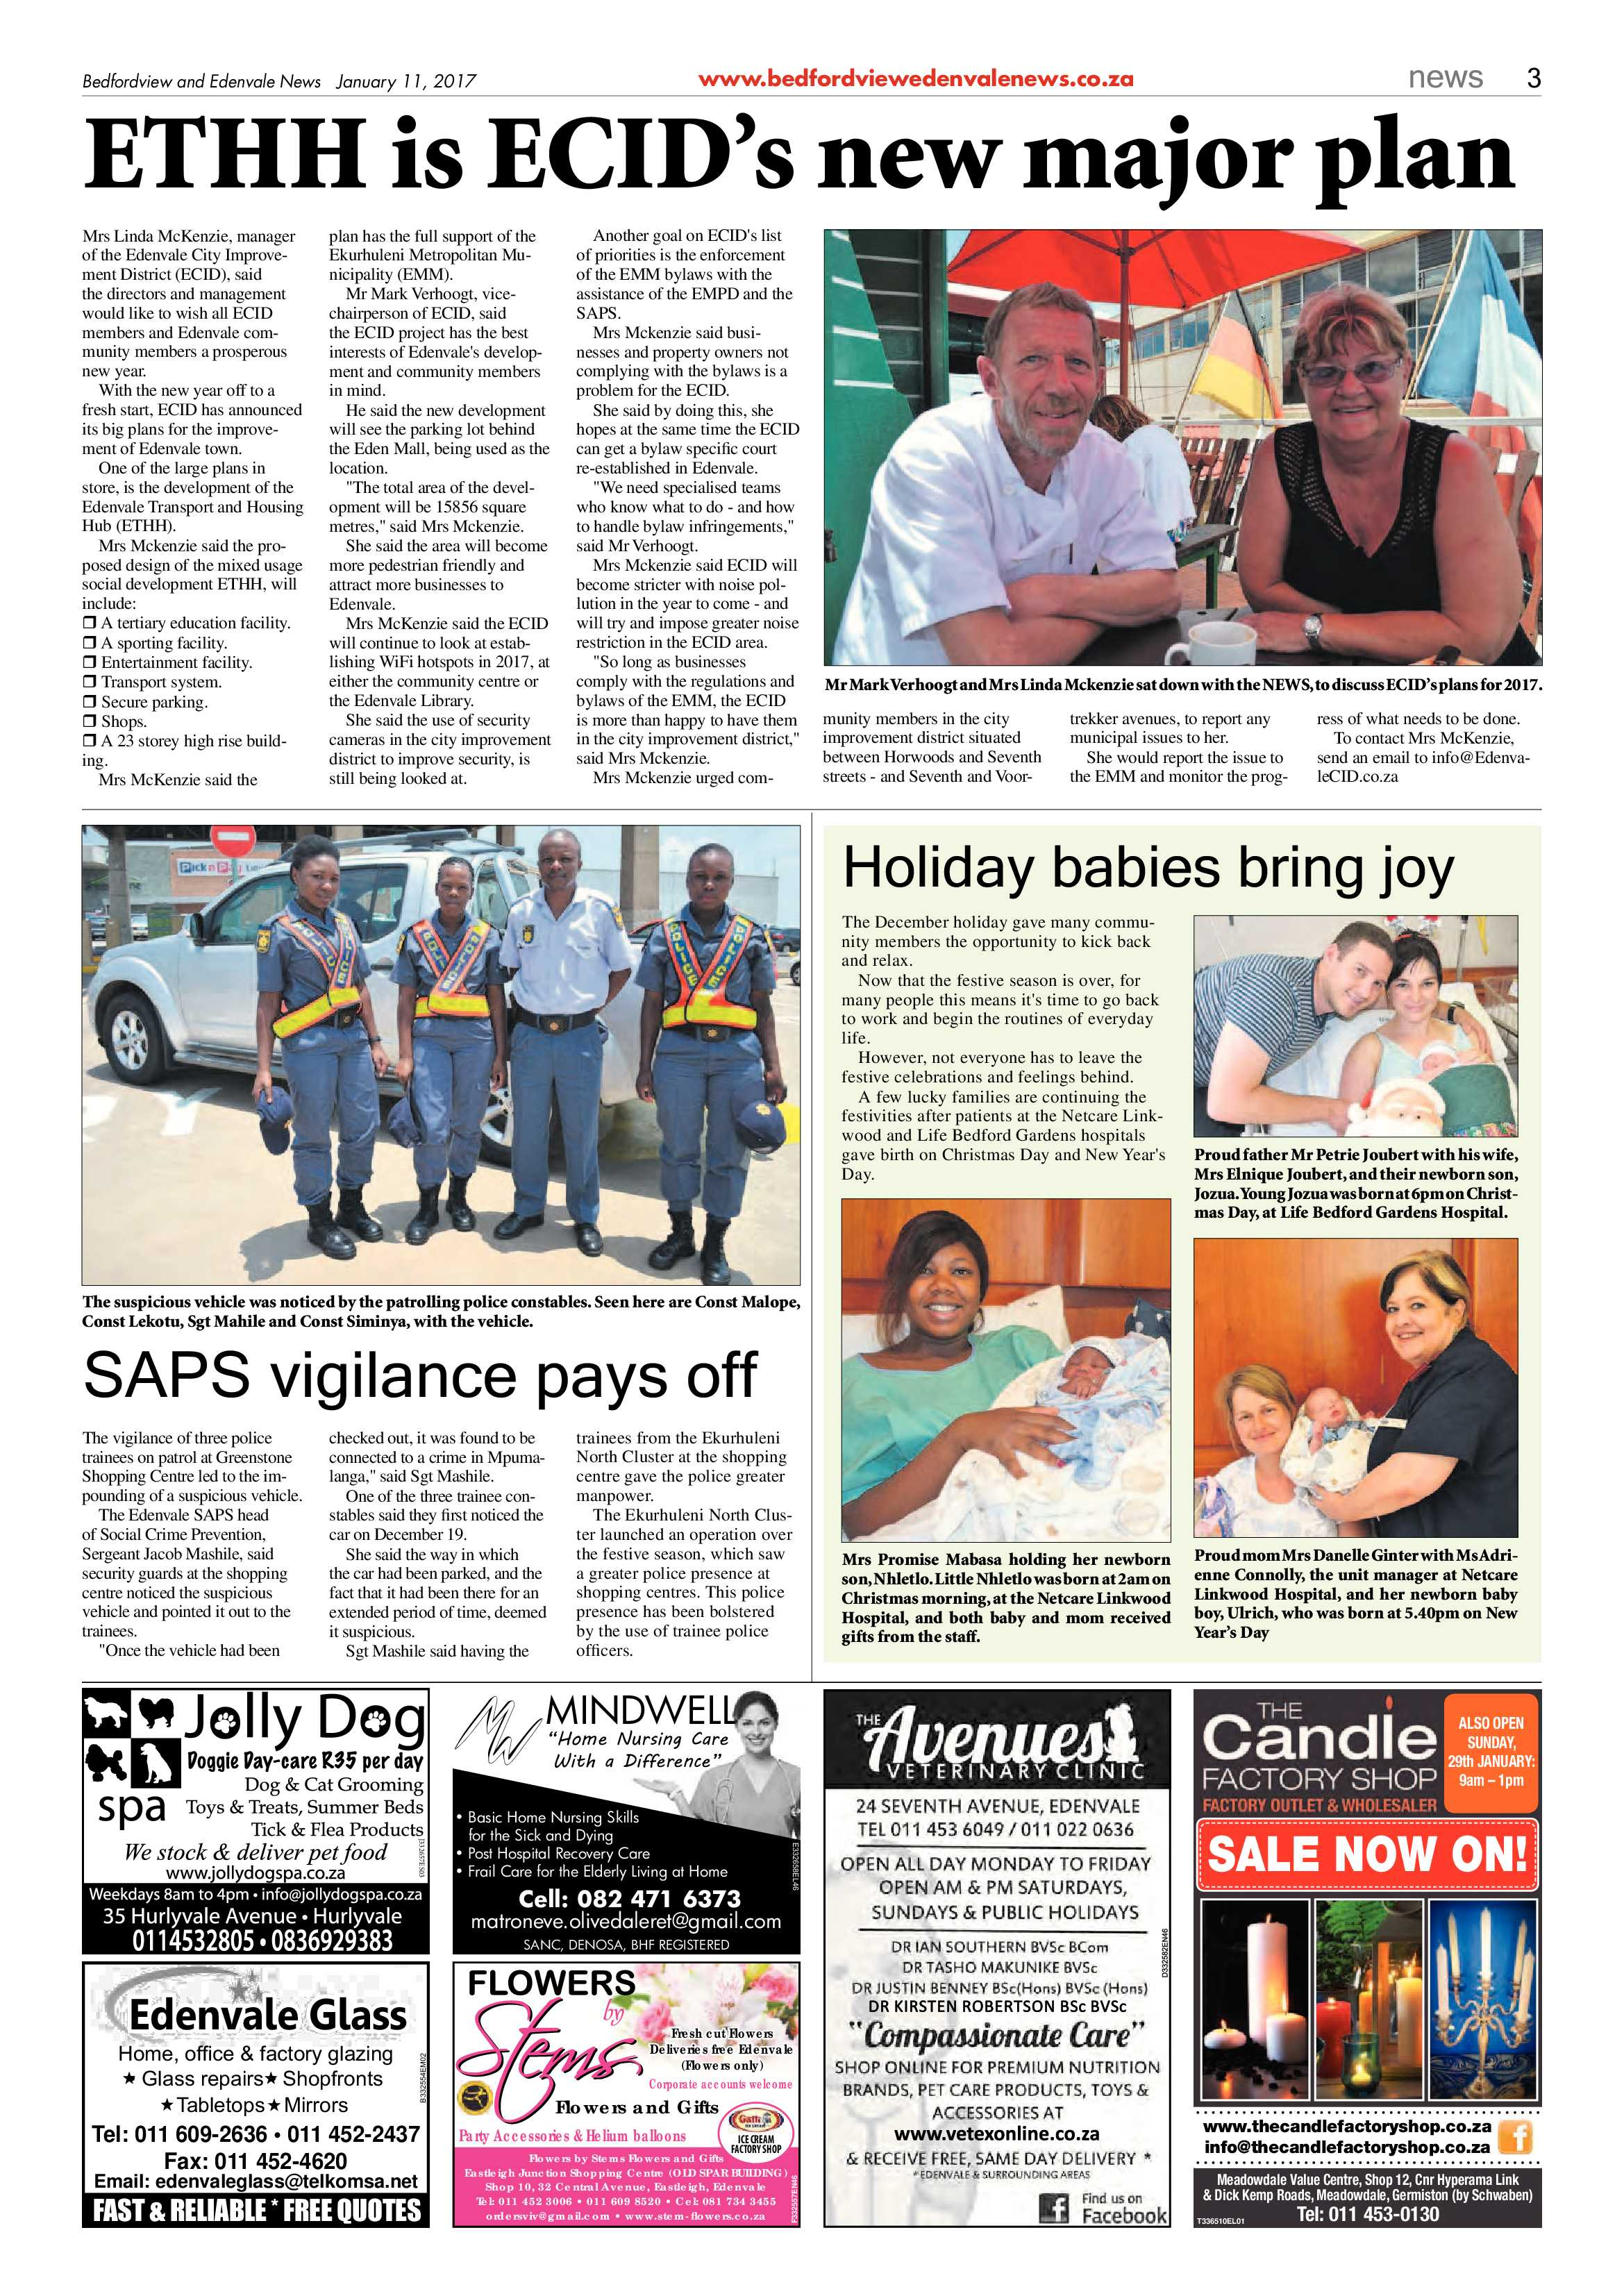 Bedfordview and Edenvale News 11 January 2017 | Bedfordview